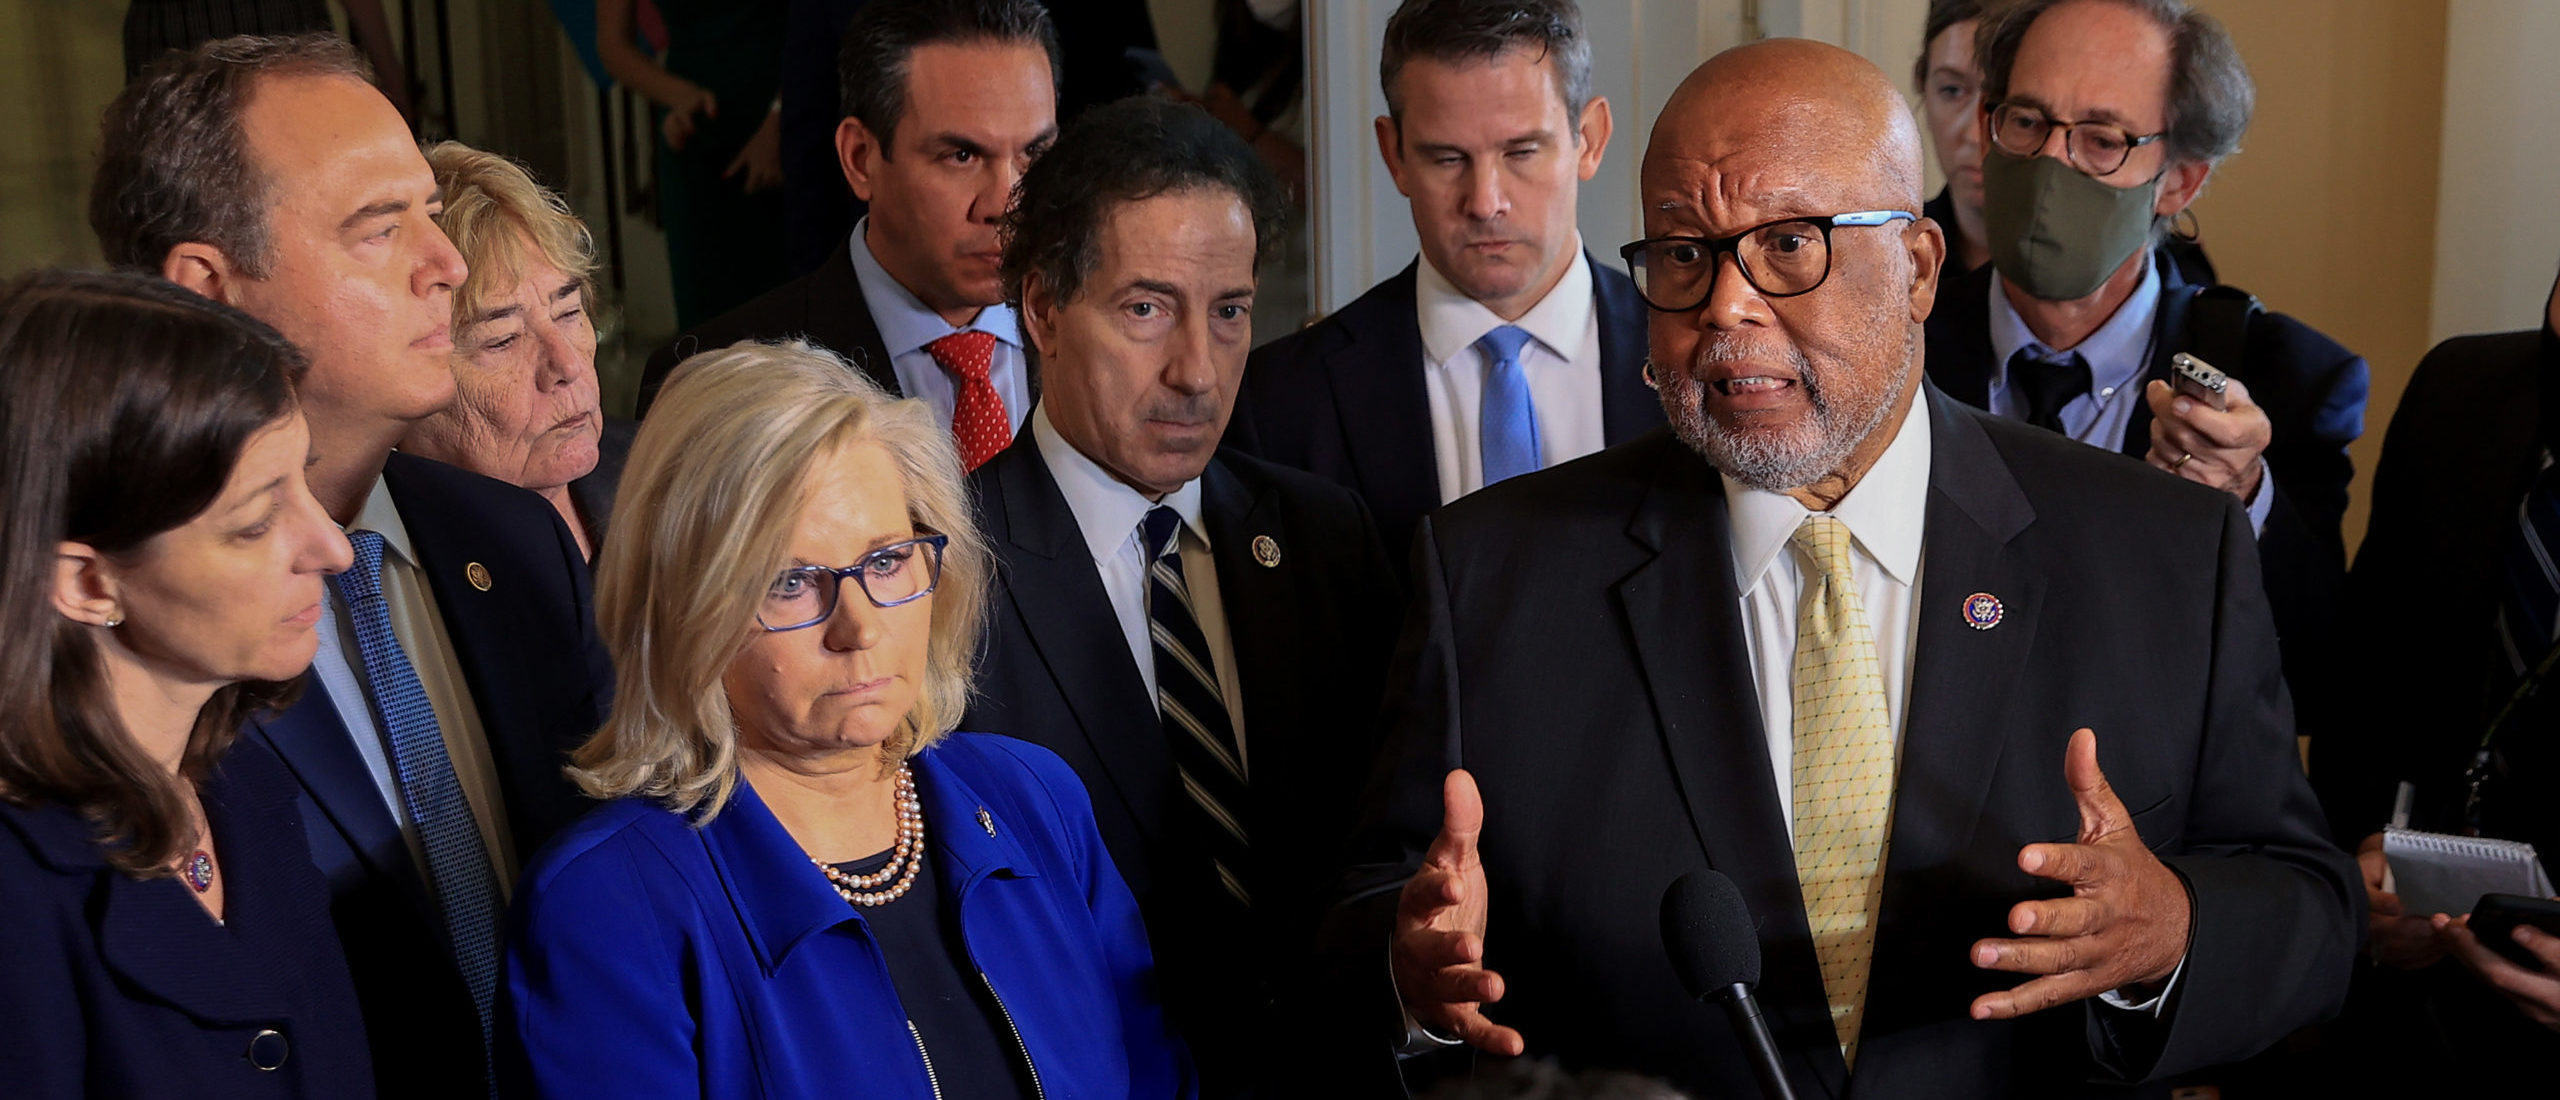 Chairman Rep. Bennie Thompson and Rep. Liz Cheney joined by fellow committee members, speak to the media following a hearing of the House Select Committee investigating the January 6 attack on the U.S. Capitol. (Photo by Chip Somodevilla/Getty Images)